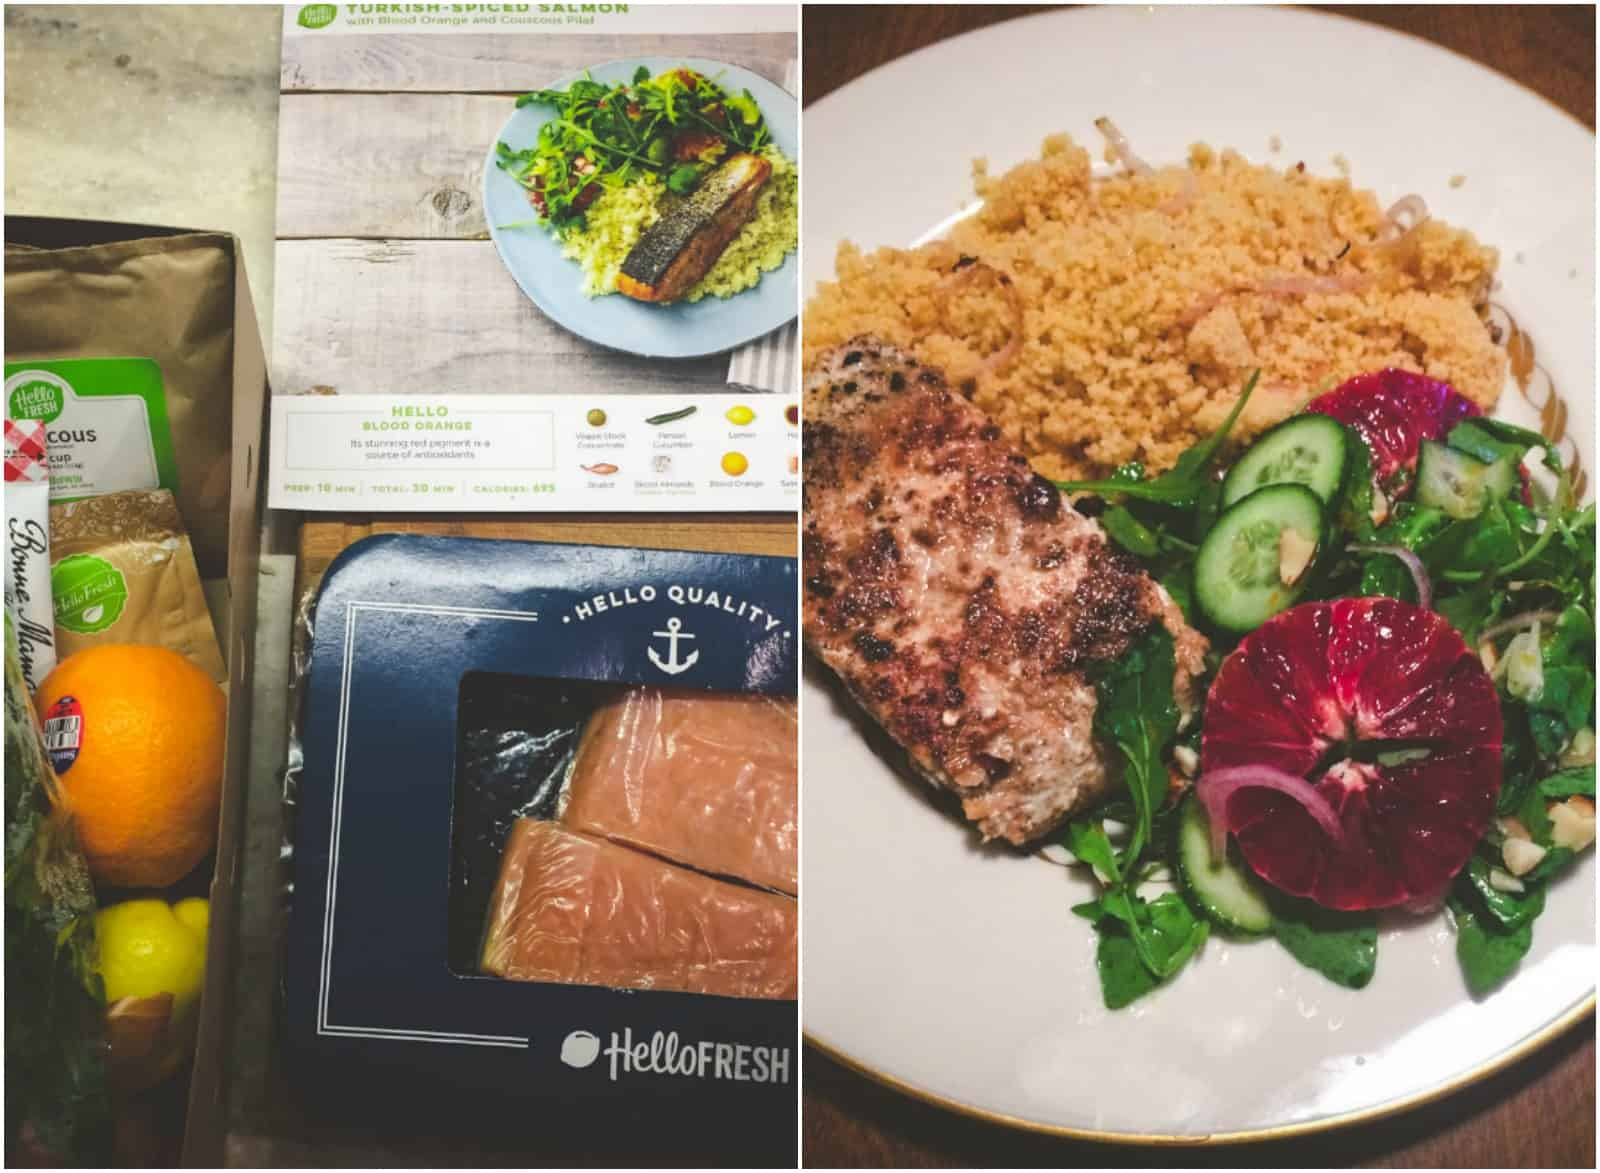 Amazon Meal Kit Delivery Service Hellofresh  Coupon Codes 2020